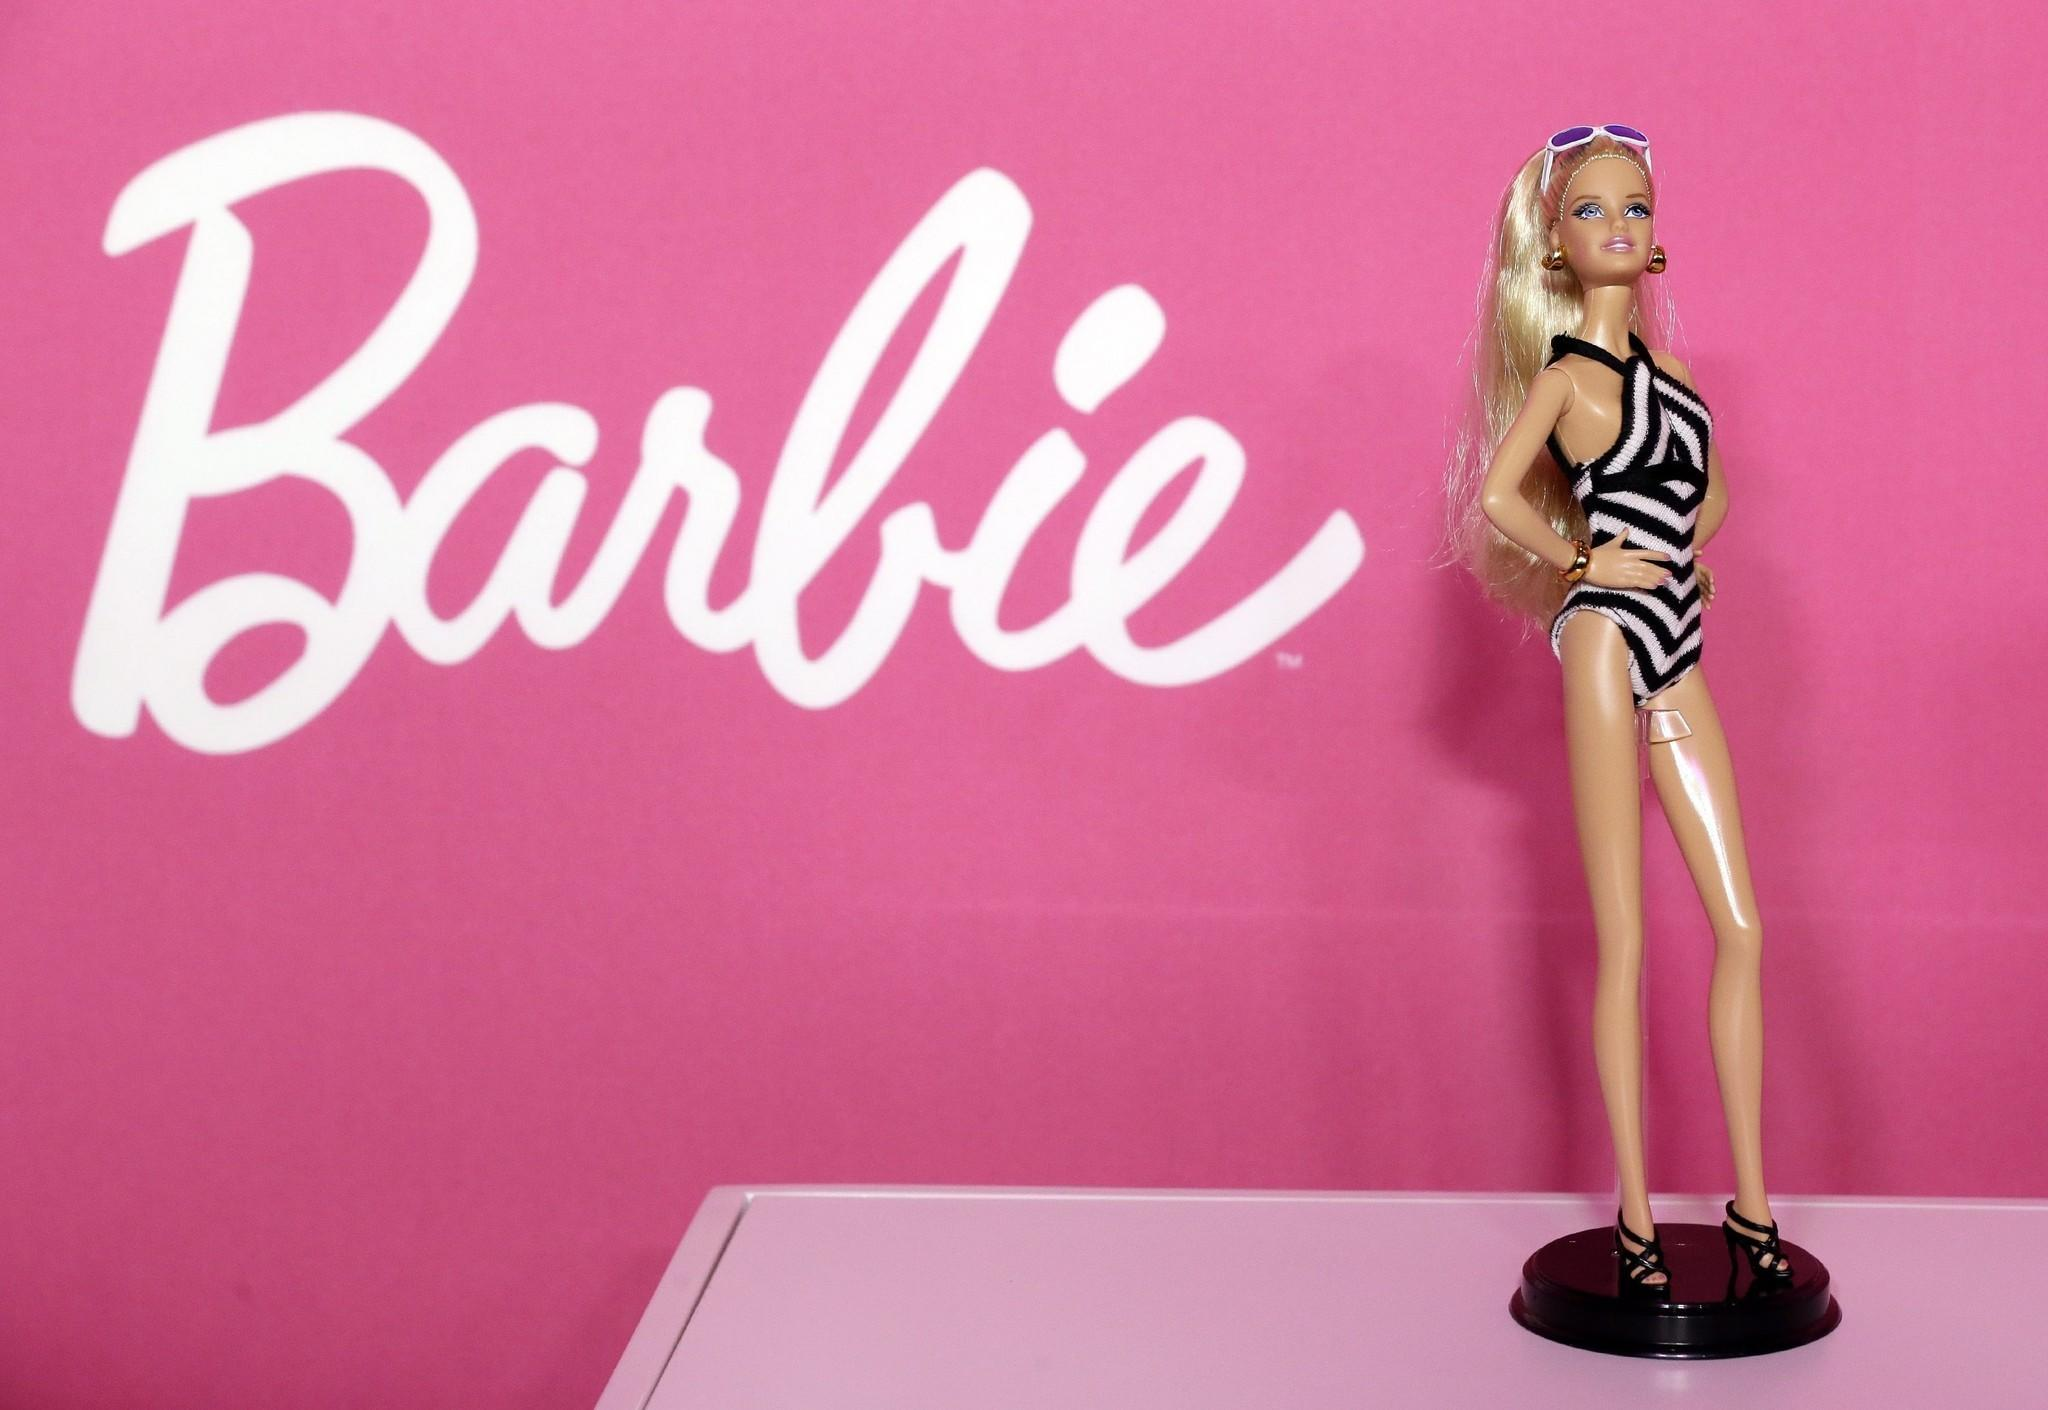 Less than a month after Barbie courted controversy for appearing in the pages of Sports Illustrated's swimsuit issue, advocacy groups are criticizing a partnership between the Girl Scouts and Mattel, the maker of the toy doll.